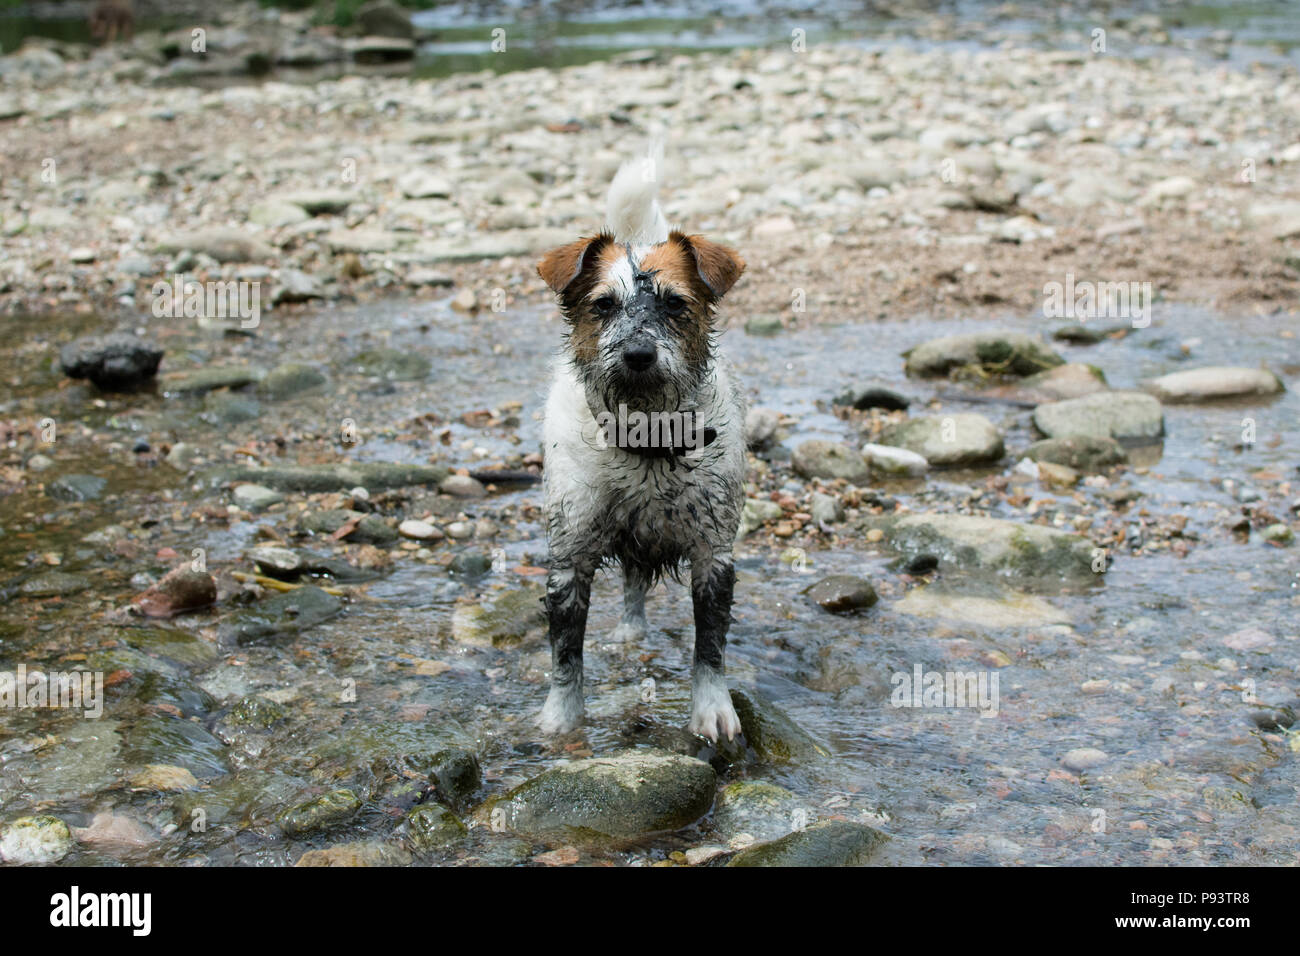 Funny Muddy Dirty Dog In A Natural River Background Stock Photo